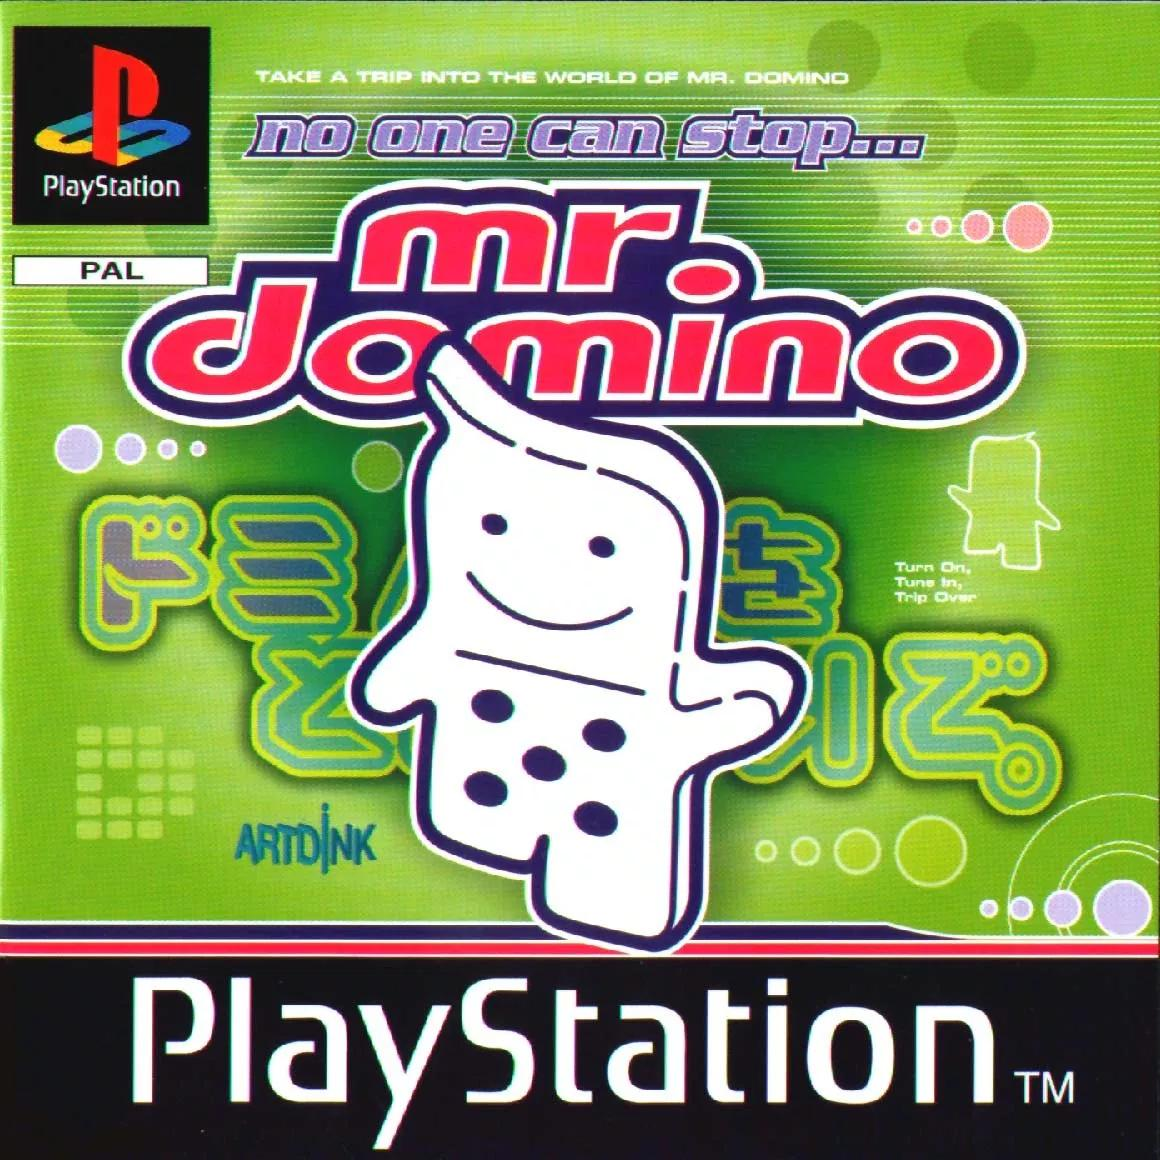 No One Can Stop Mr. Domino (1998) PlayStation 1, PAL Box Art <br>http://pic.twitter.com/2uAKmhccYR